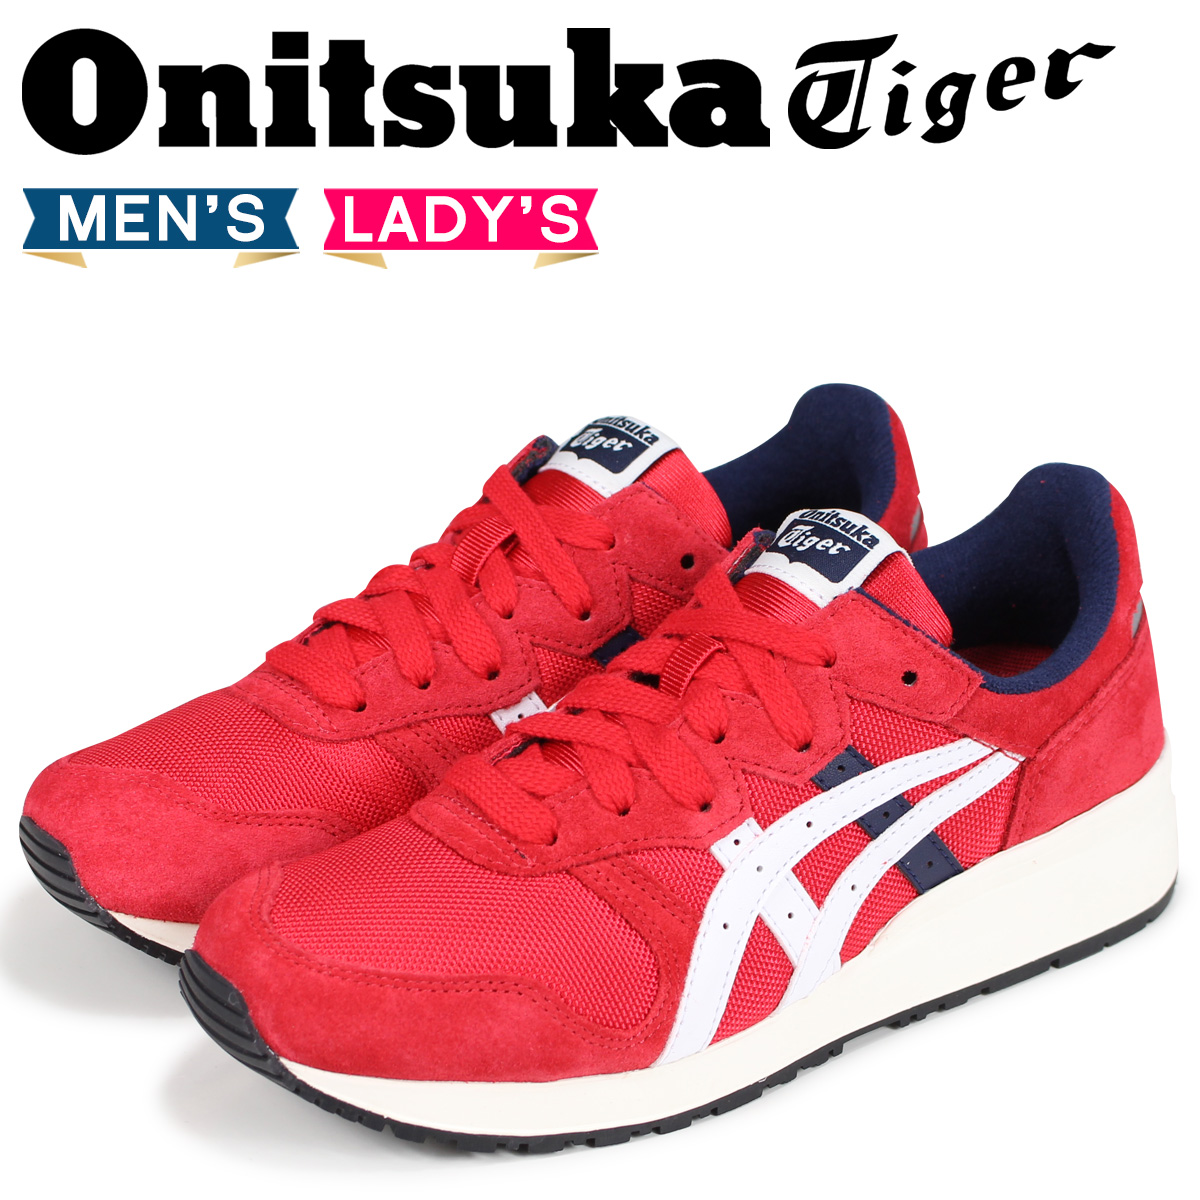 the best attitude 3d4ca a04aa Onitsuka Tiger tiger Alley Onitsuka tiger TIGER ALLY men gap Dis sneakers  1183A029-600 red red